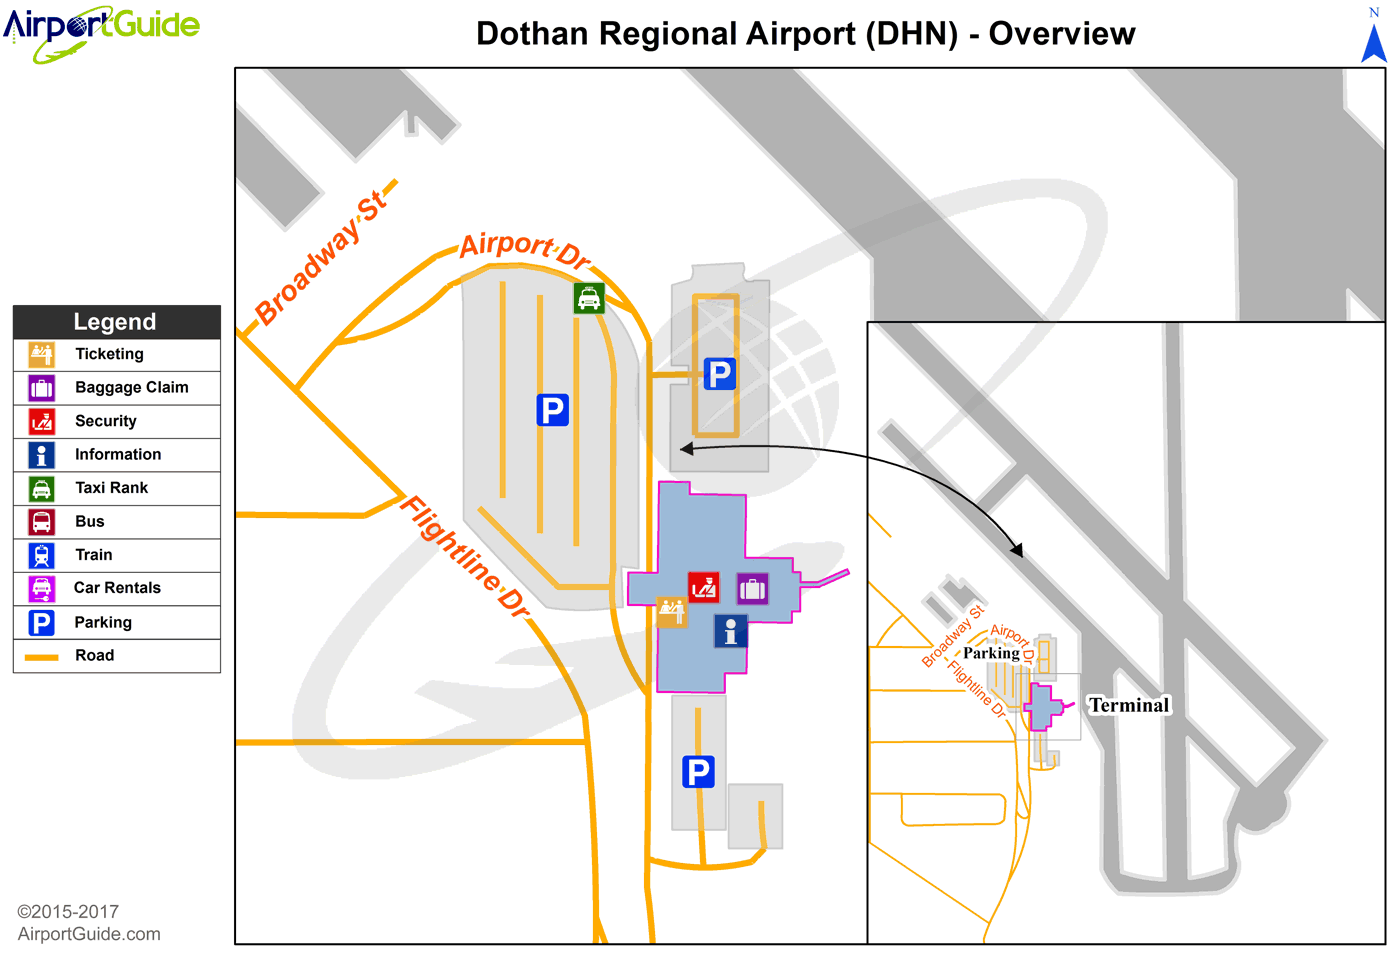 Dothan - Dothan Regional (DHN) Airport Terminal Map - Overview